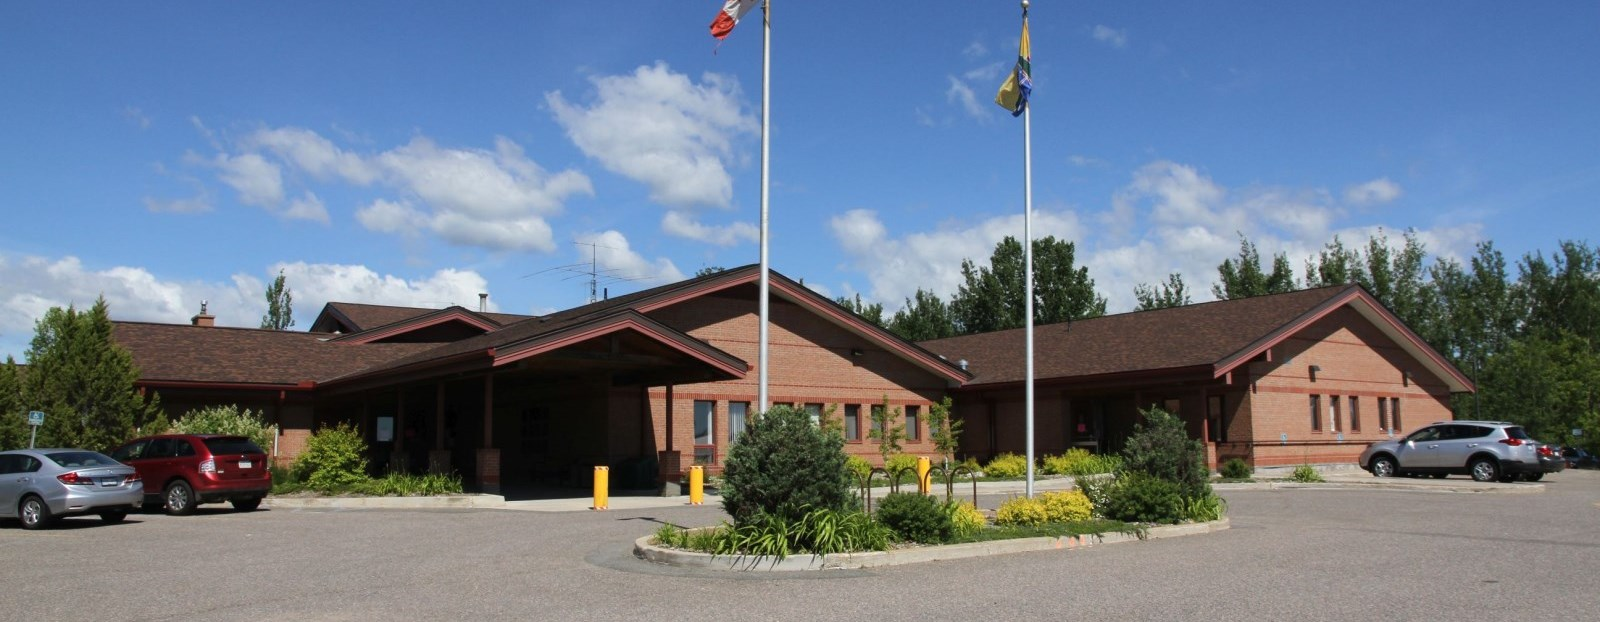 55 plus centre thunder bay